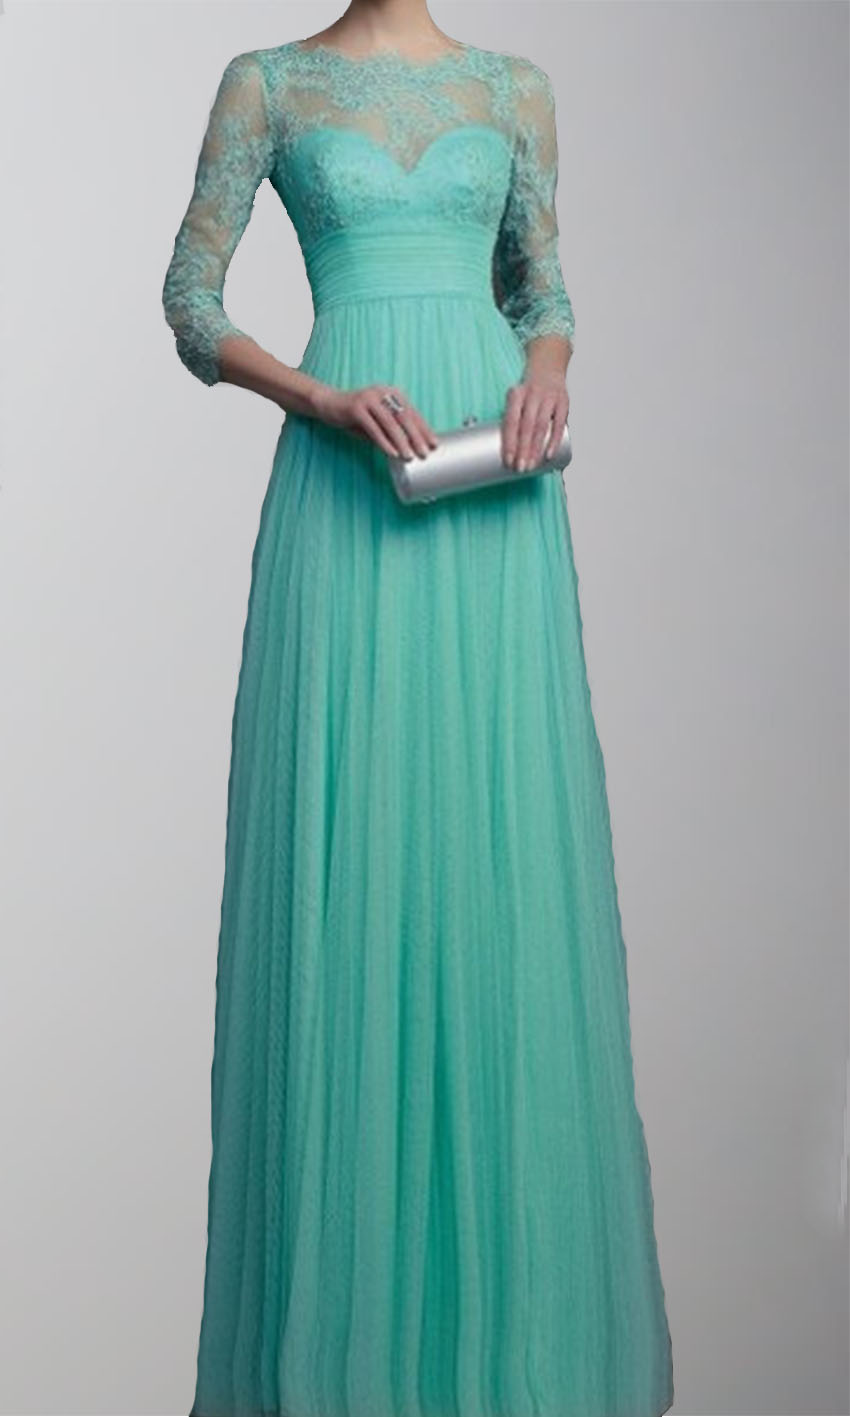 3/4 sleeves Lace Applique 2015 Long Prom Dresses KSP269 [KSP269] - £102.00 : Cheap Prom Dresses Uk, Bridesmaid Dresses, 2014 Prom & Evening Dresses, Look for cheap elegant prom dresses 2014, cocktail gowns, or dresses for special occasions? kissprom.co.uk offers various bridesmaid dresses, evening dress, free shipping to UK etc.